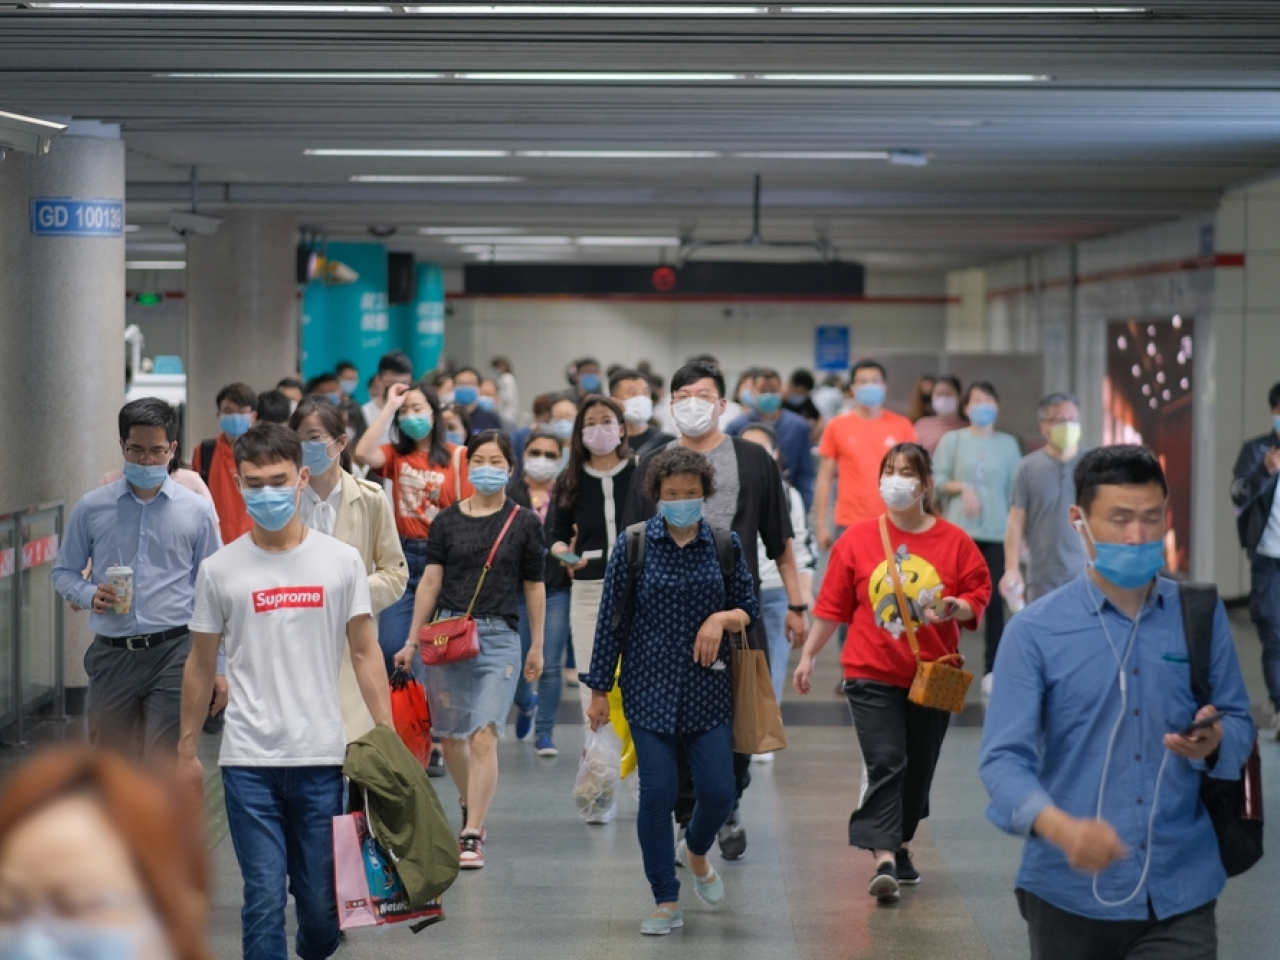 Commuters in Shanghai wear masks as a precaution against Covid-19. File photo: Shutterstock